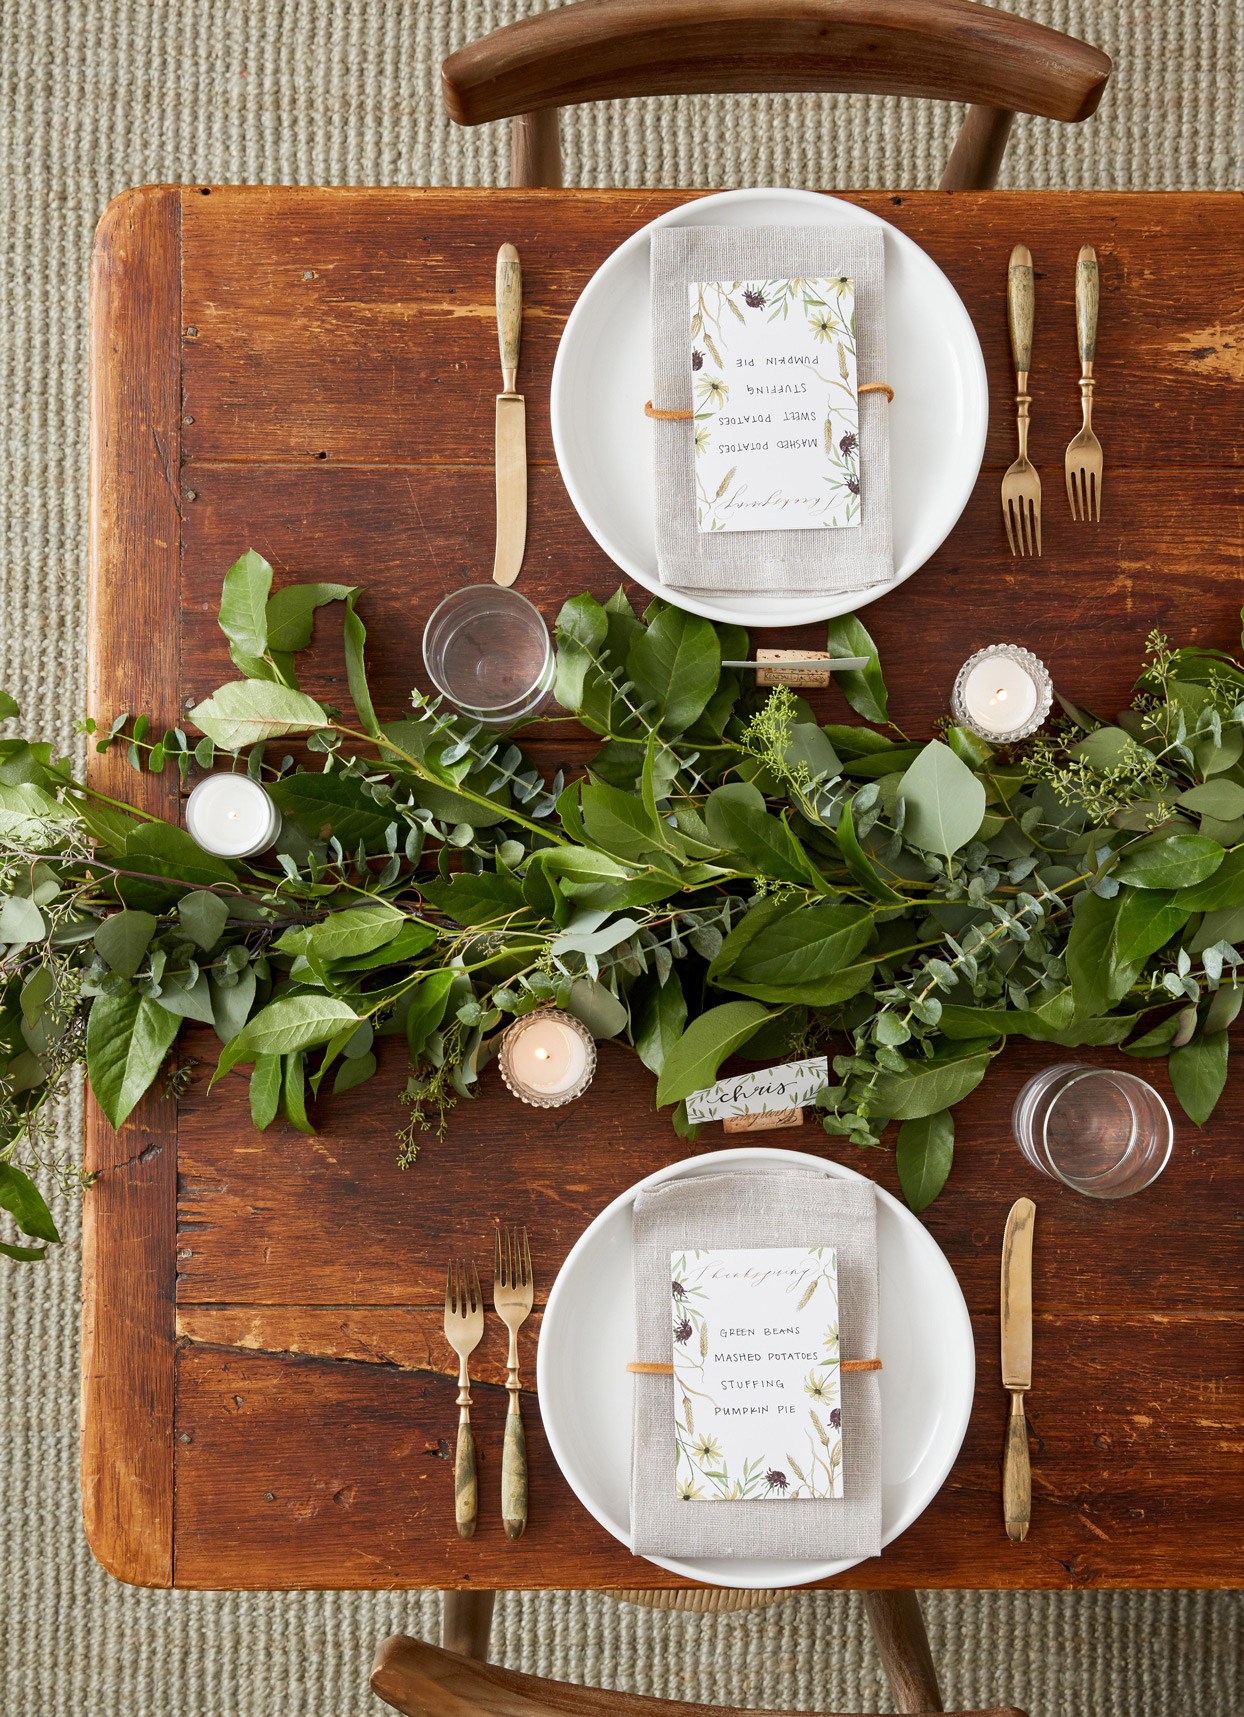 Tabletop Greenery Garland